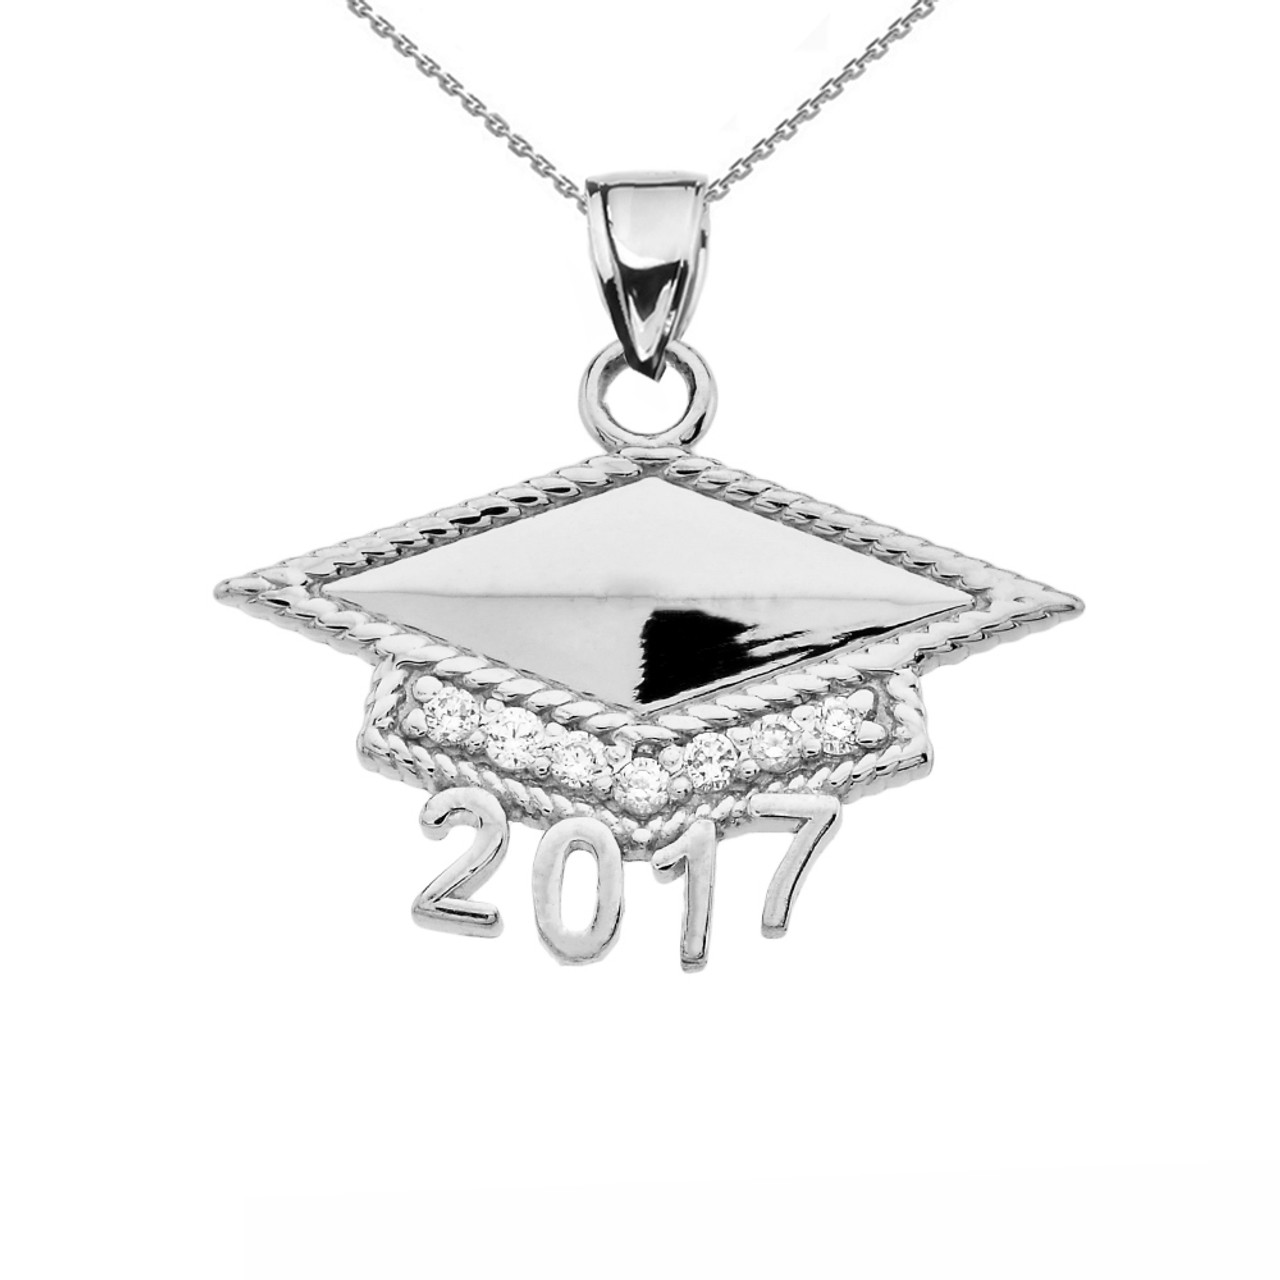 White gold class of 2017 graduation cap with cubic zirconia pendant white gold class of 2017 graduation cap with cubic zirconia pendant necklace aloadofball Images